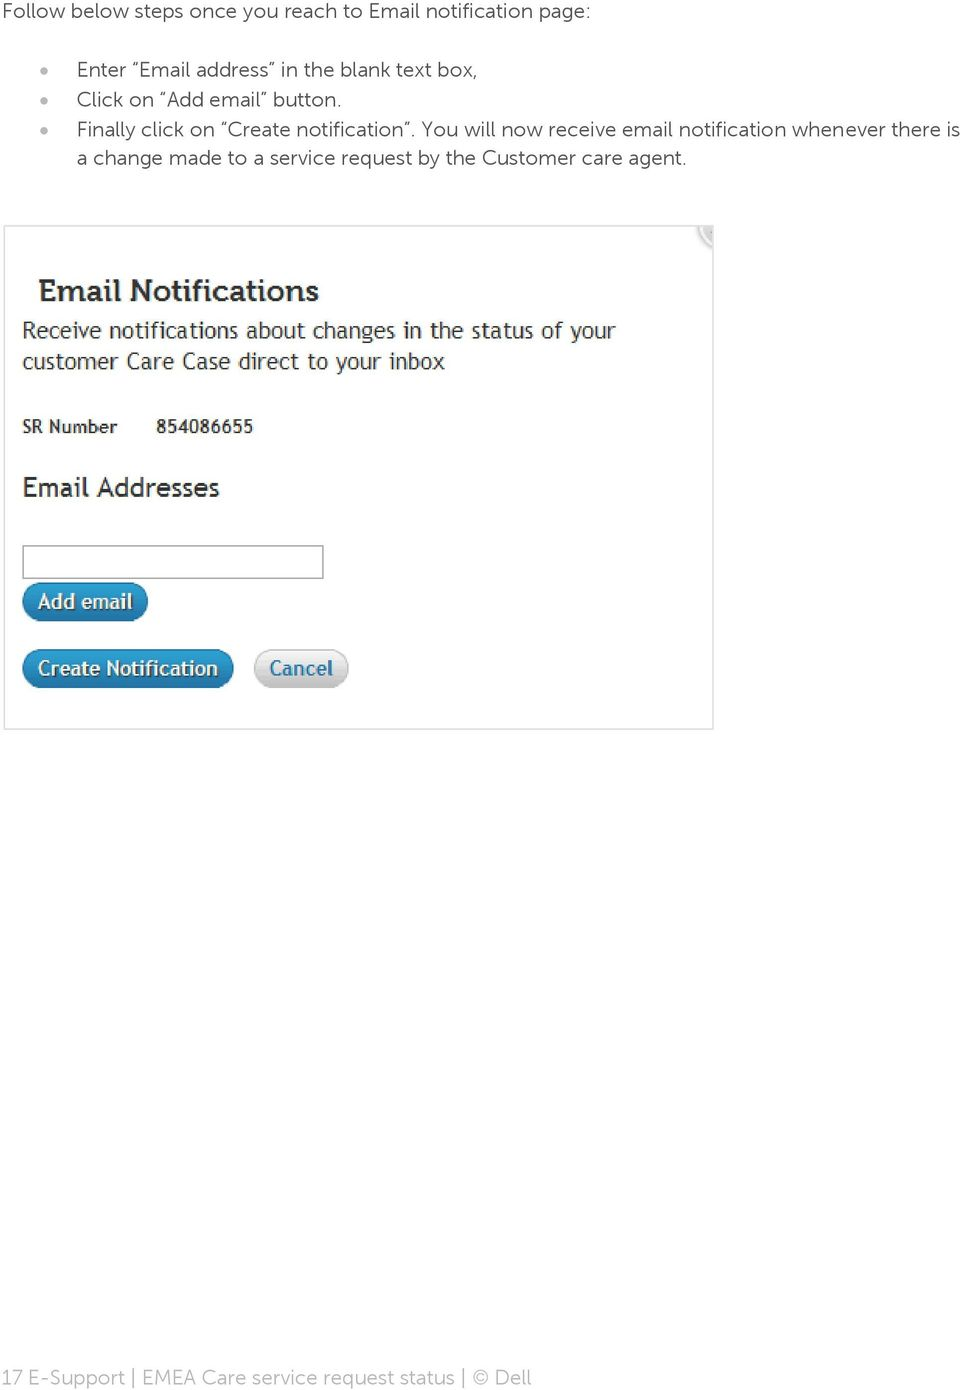 You will now receive email notification whenever there is a change made to a service